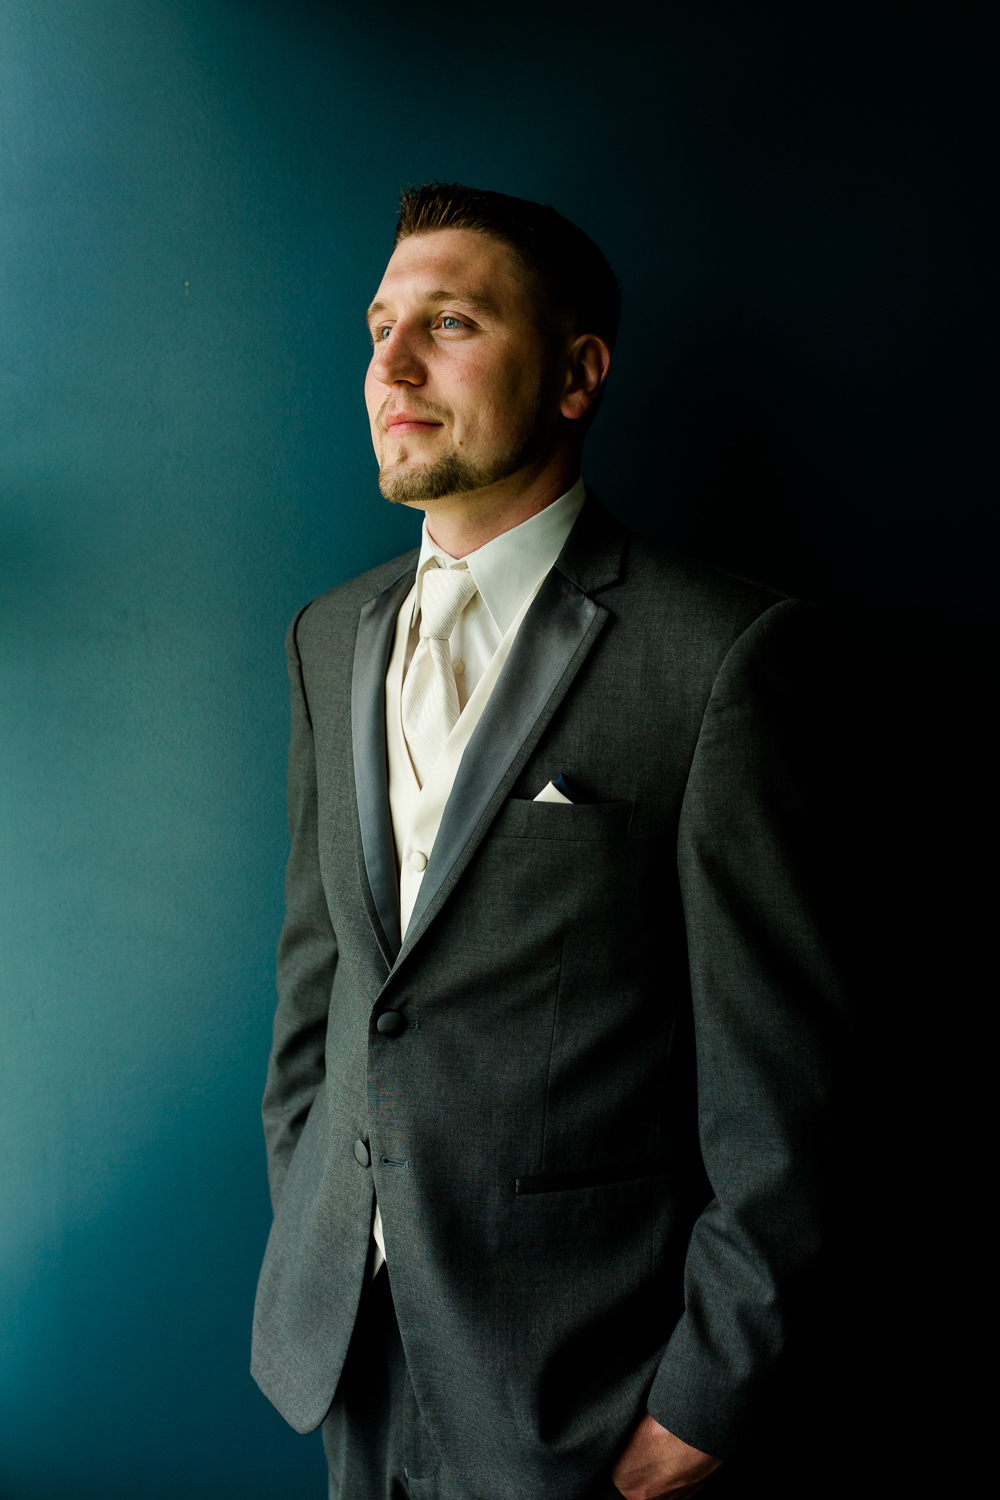 Portrait of a groom against a blue background. He is looking away from the camera.